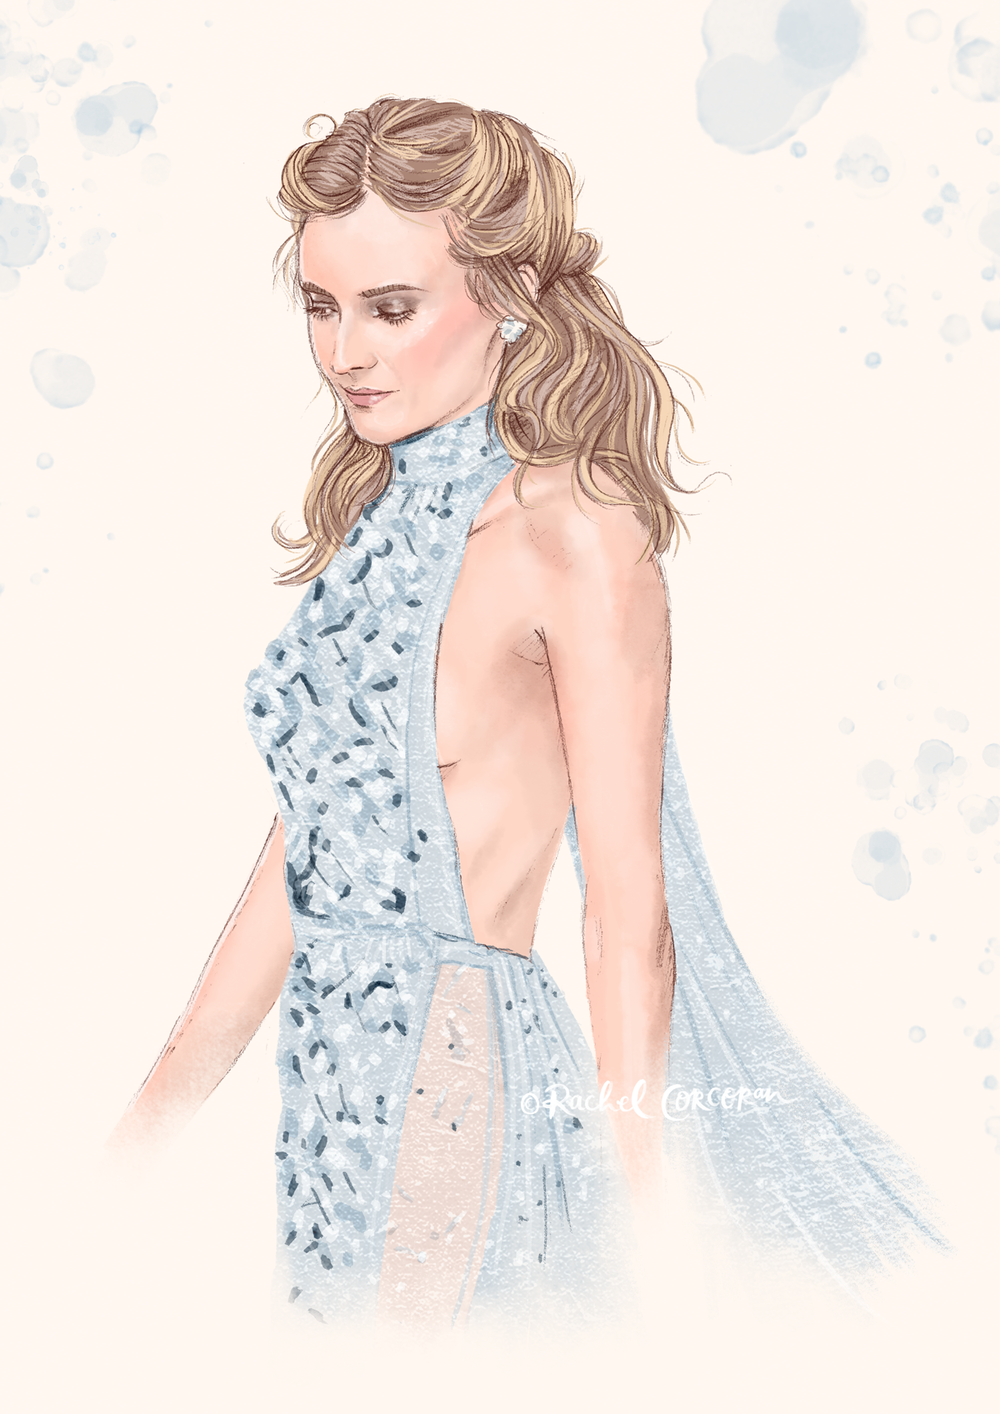 Diane Kruger Fashion illustration by Rachel Corcoran